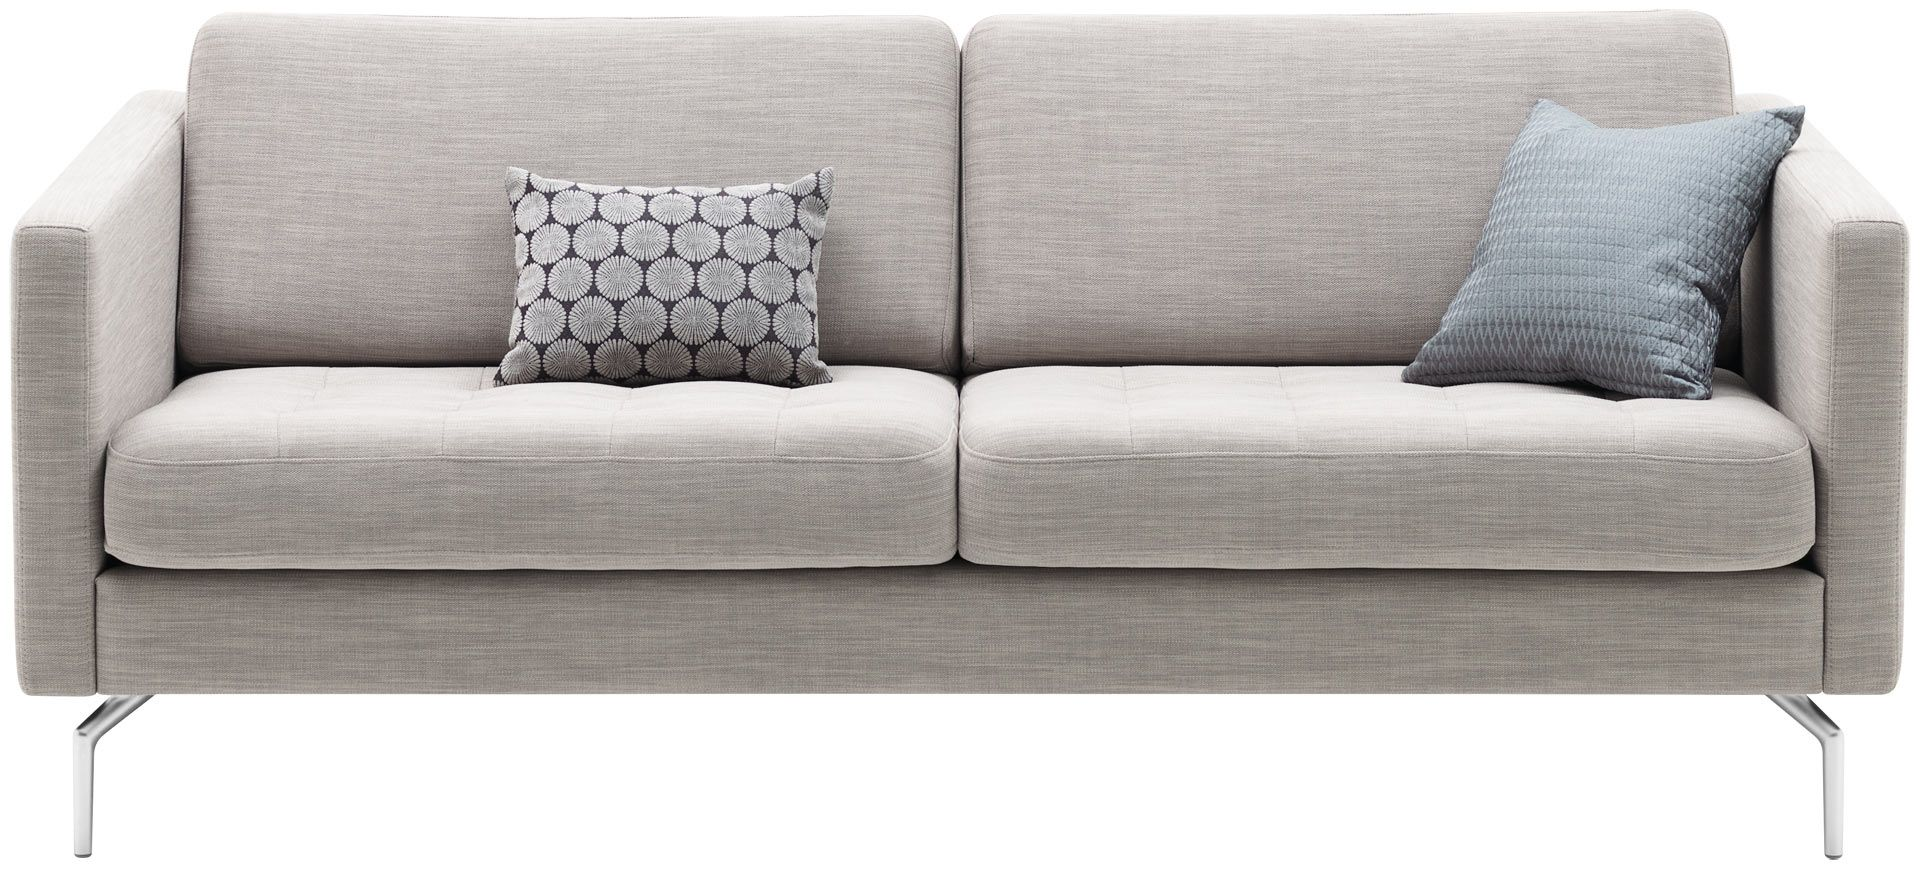 Osaka Sofa Customize Your Own Sofa Seater Sofa Sofa Living